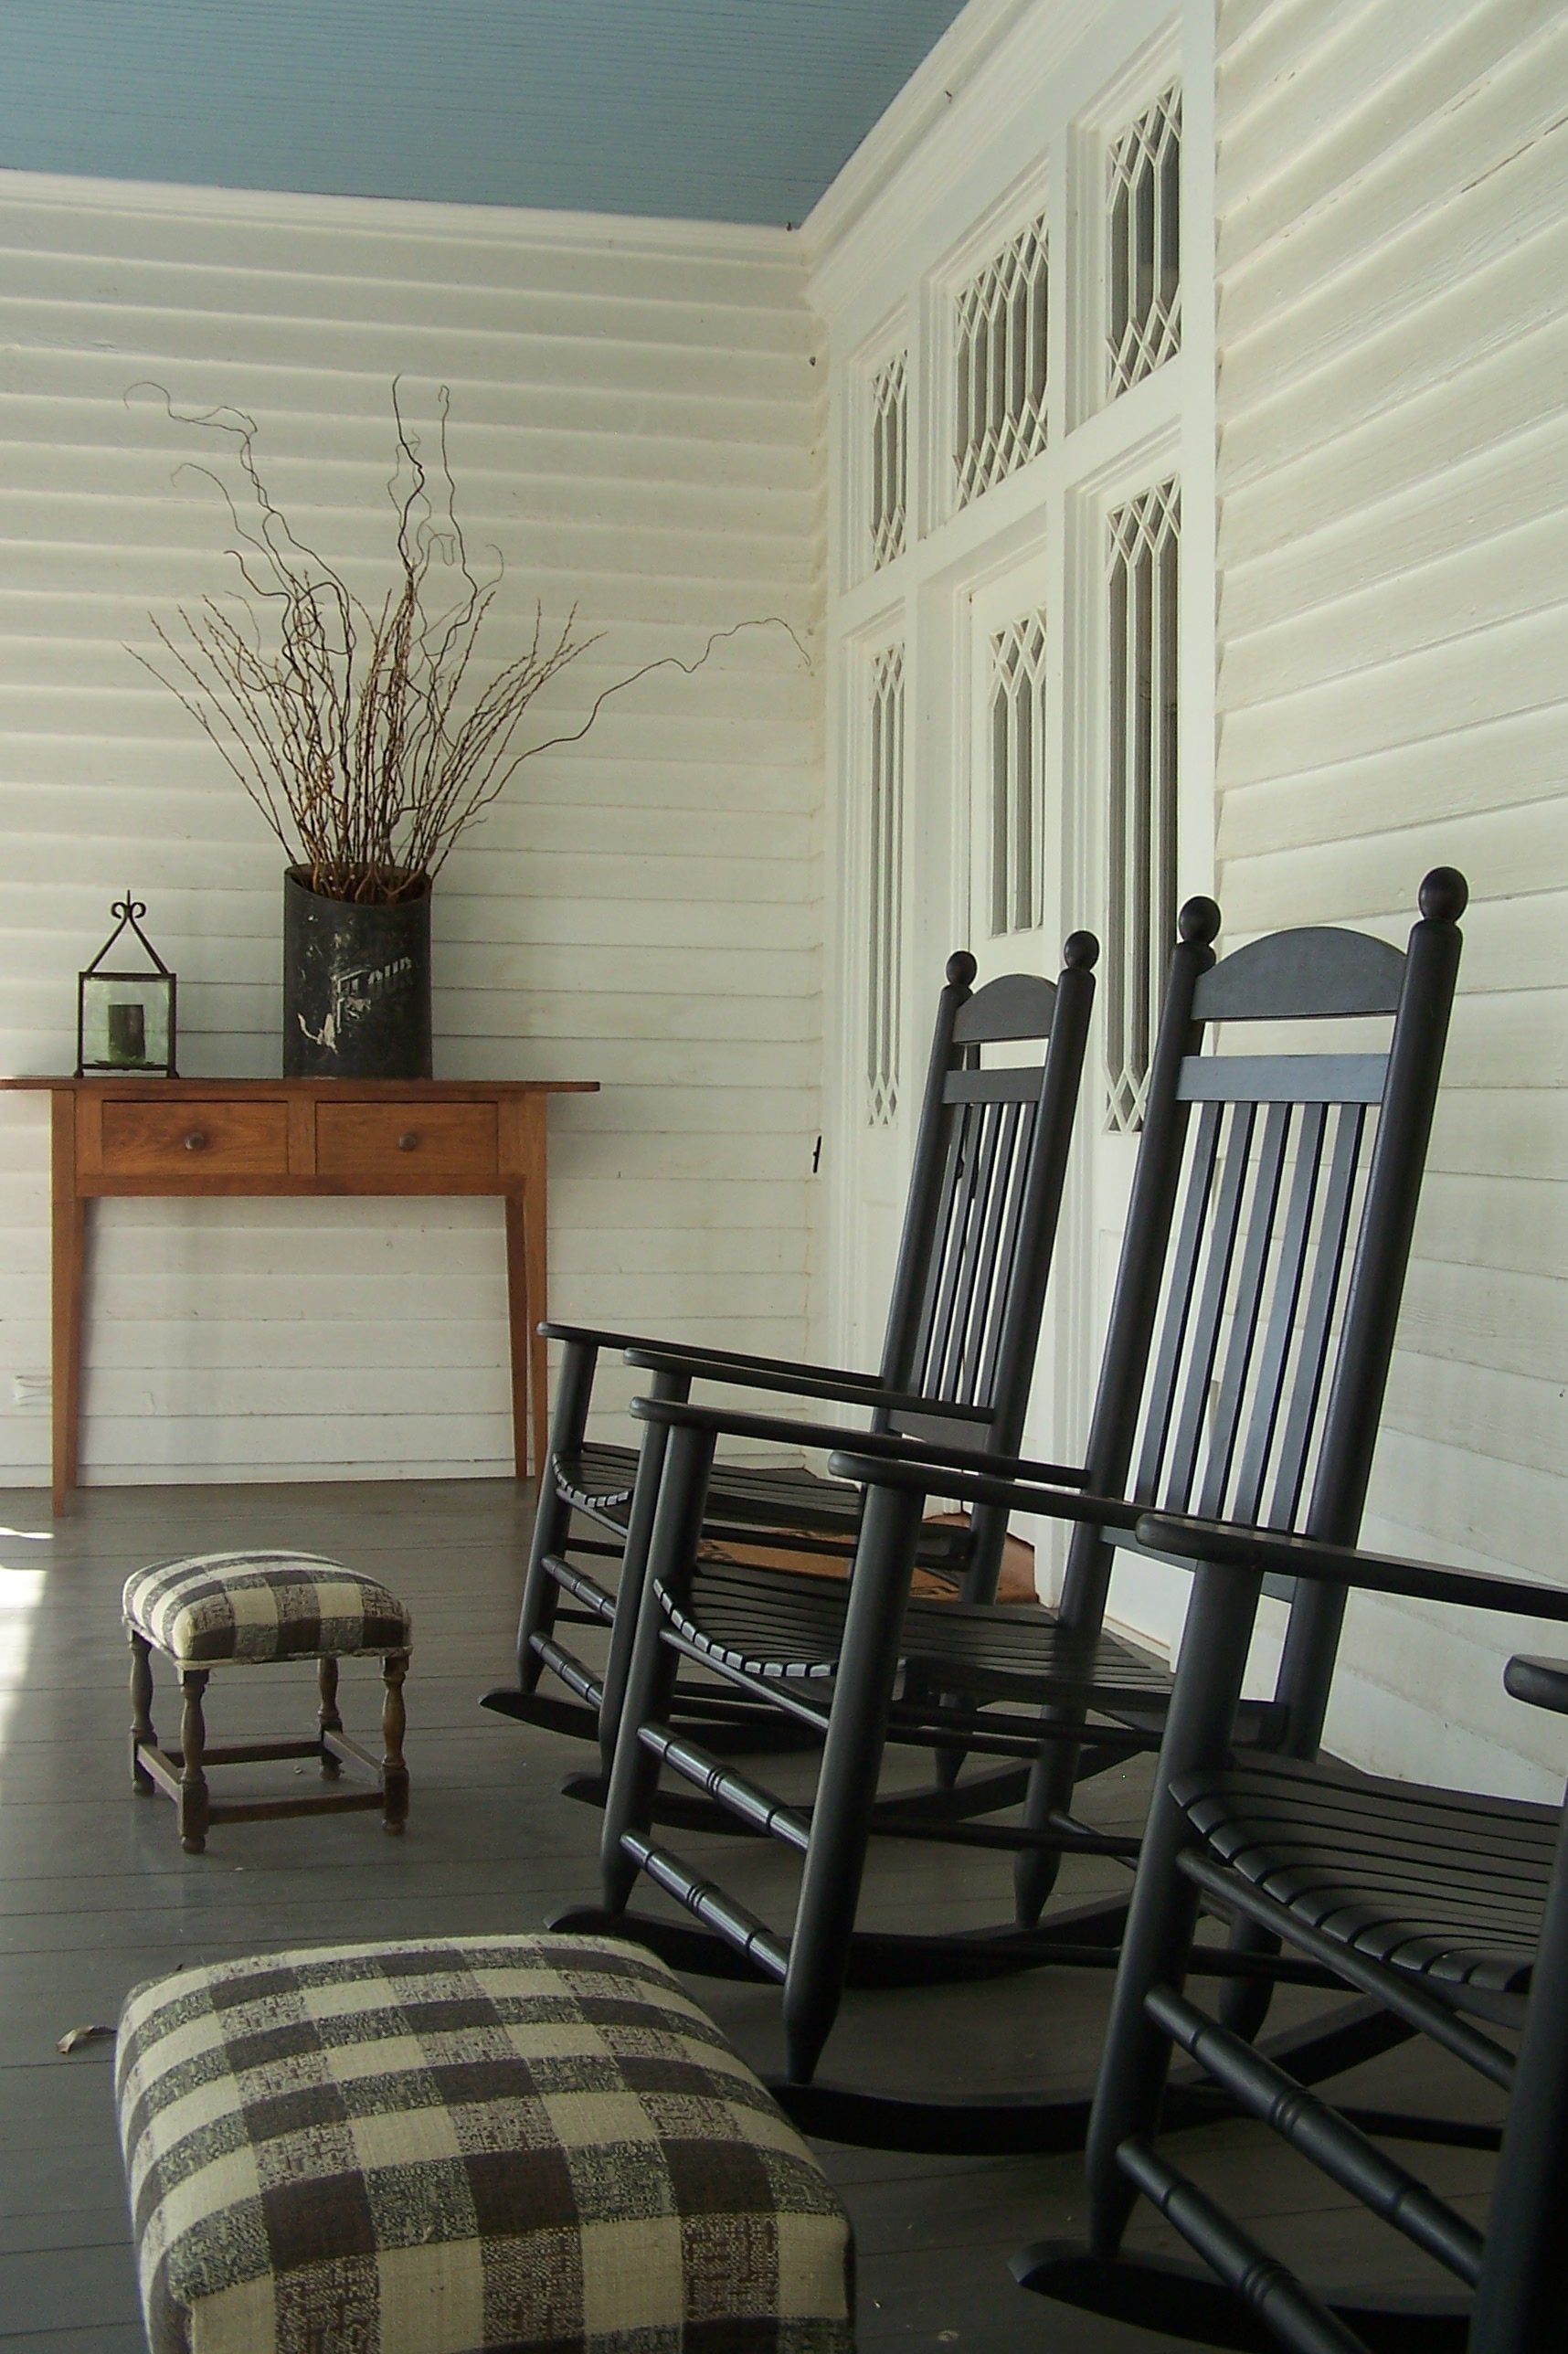 Client porch long veranda rocking chairs foot stools black and